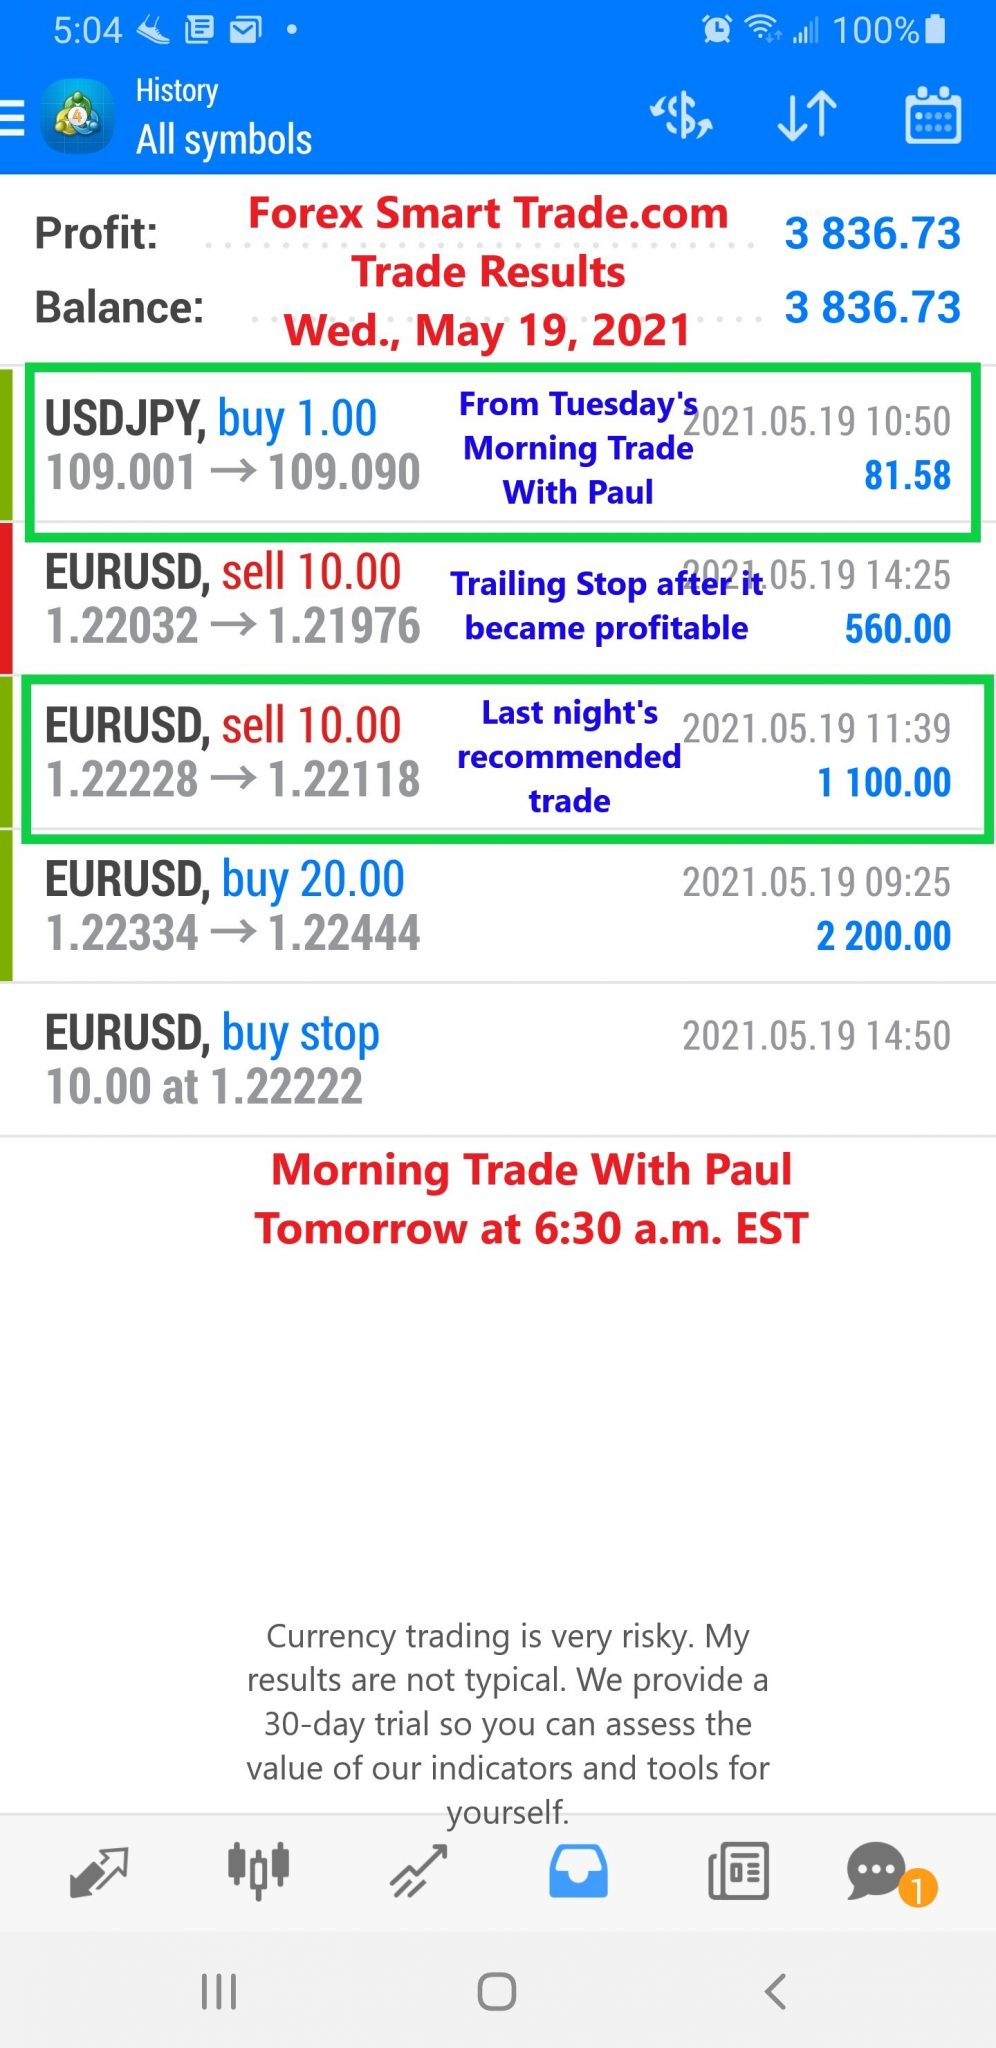 Trade Results Wednesday, May 19, 2021 - Forex Smart Trade